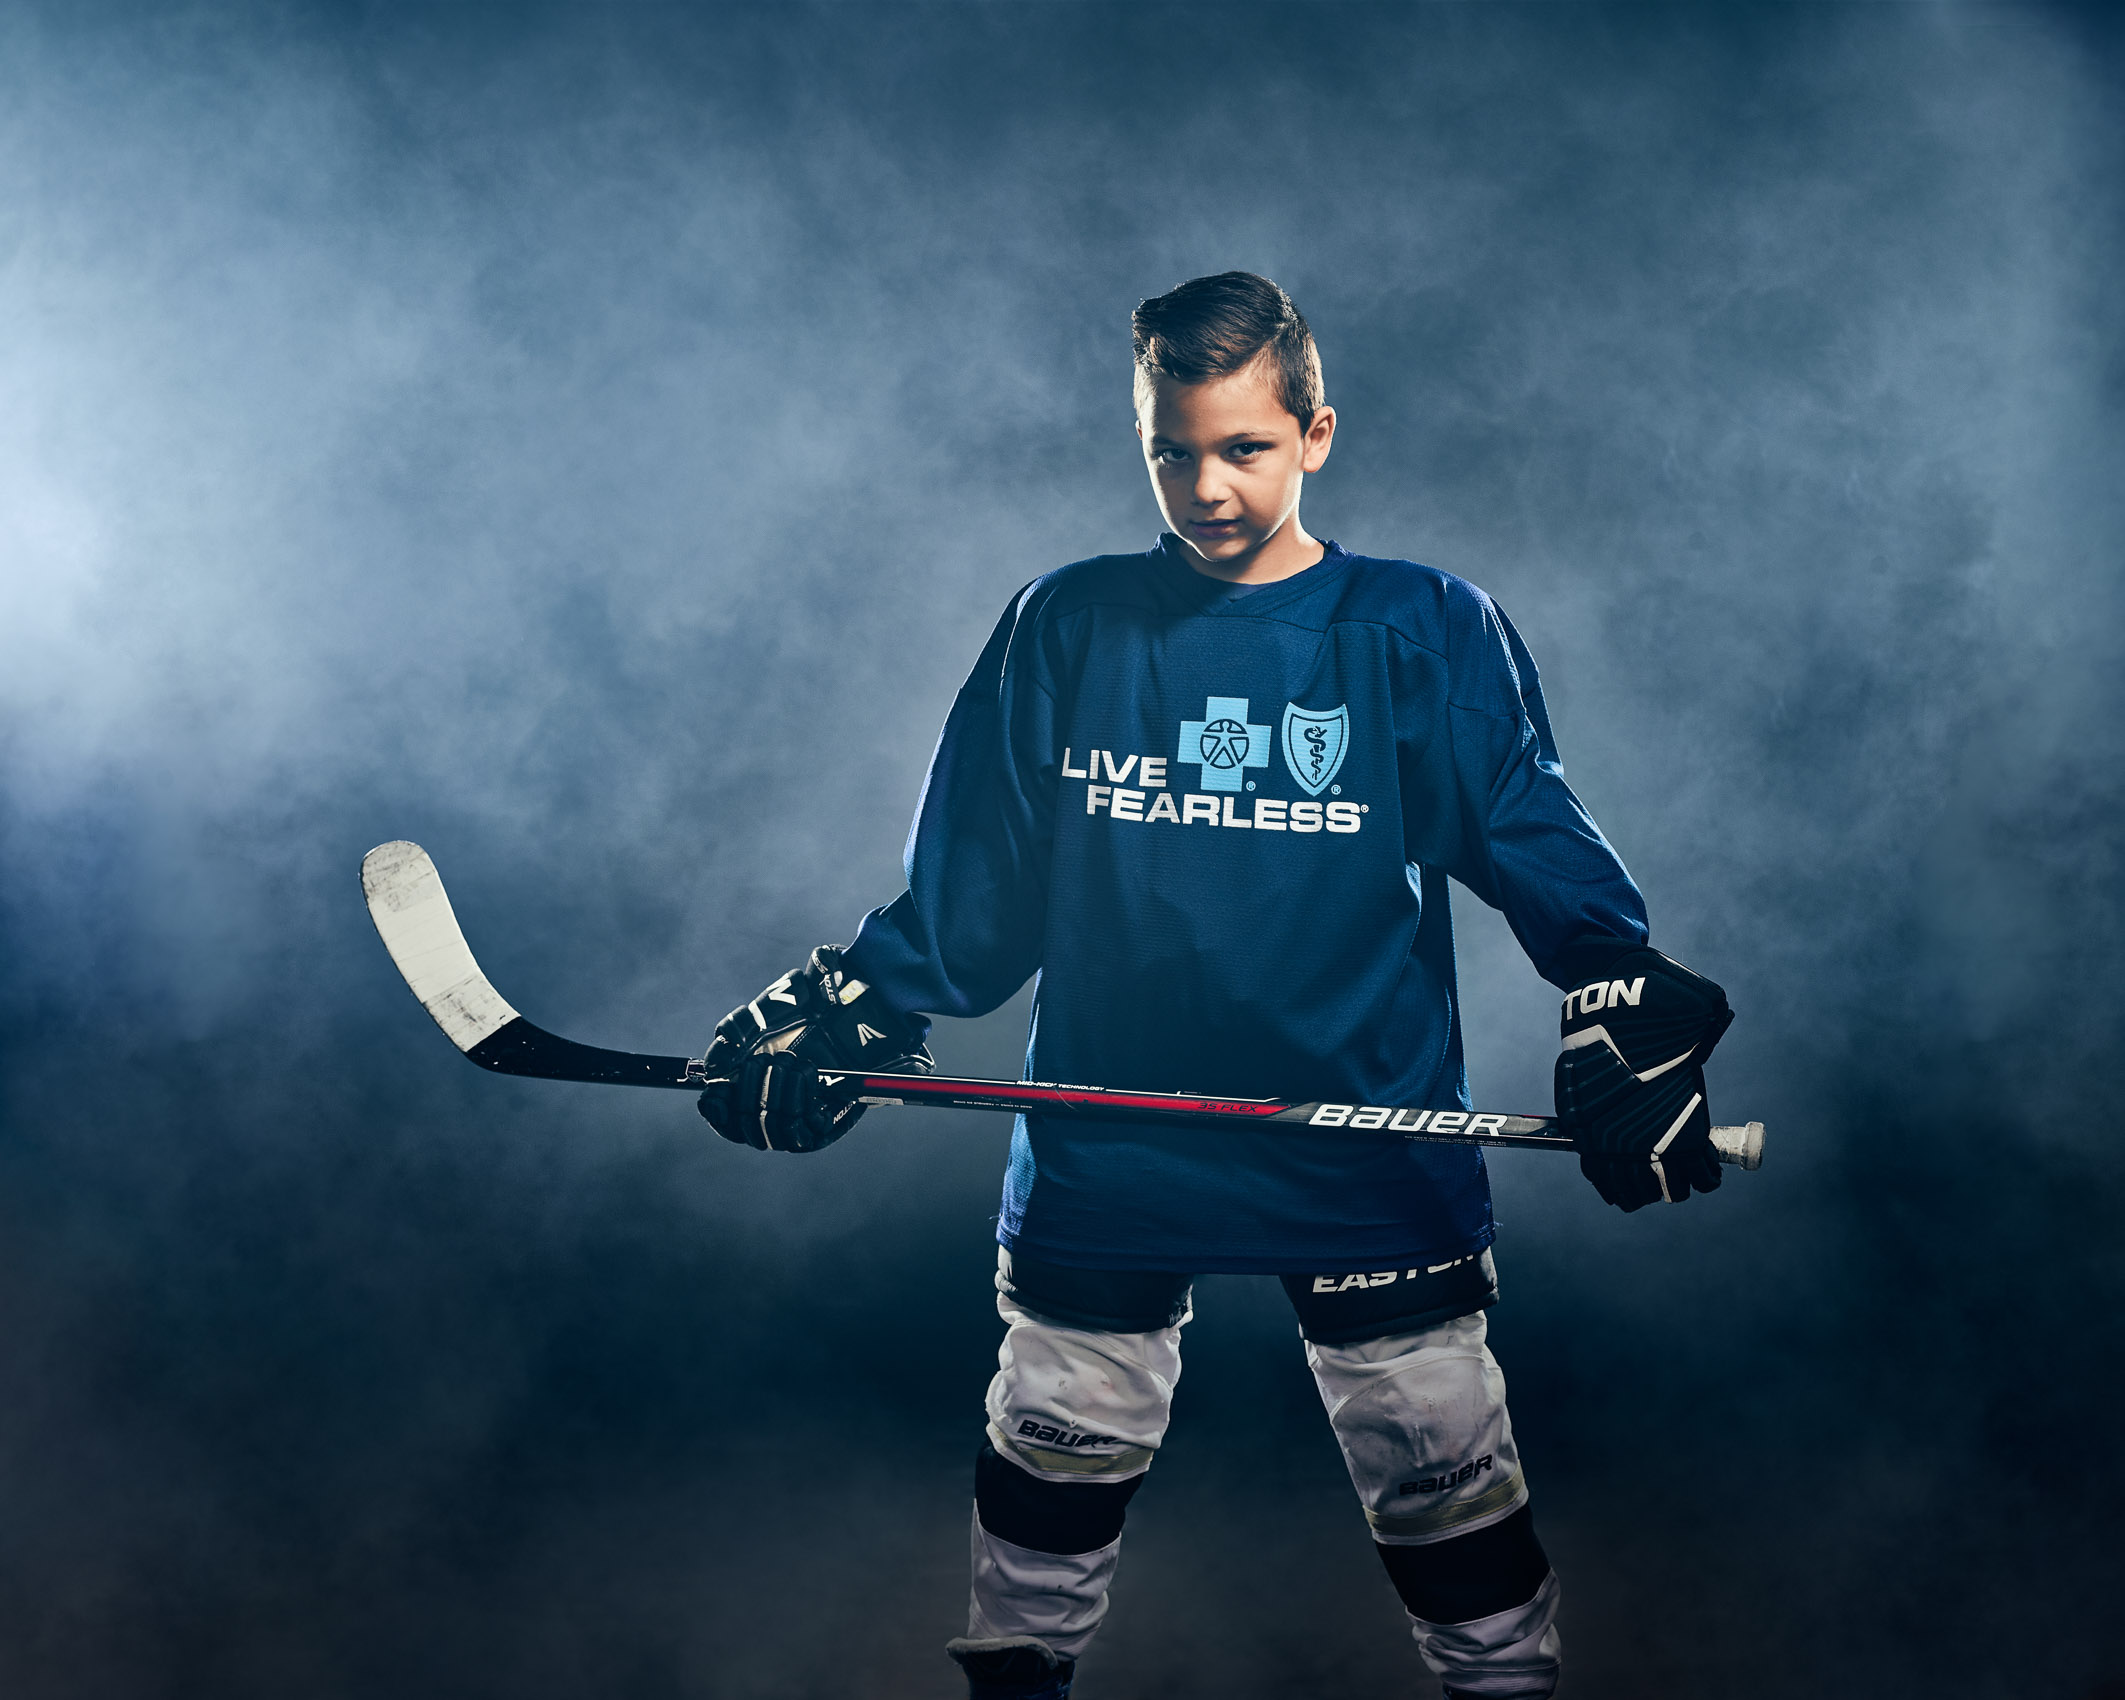 LIVE FEARLESS  — YOUTH HOCKEY PLAYER FOR BCBS WESTERN NEW YORK